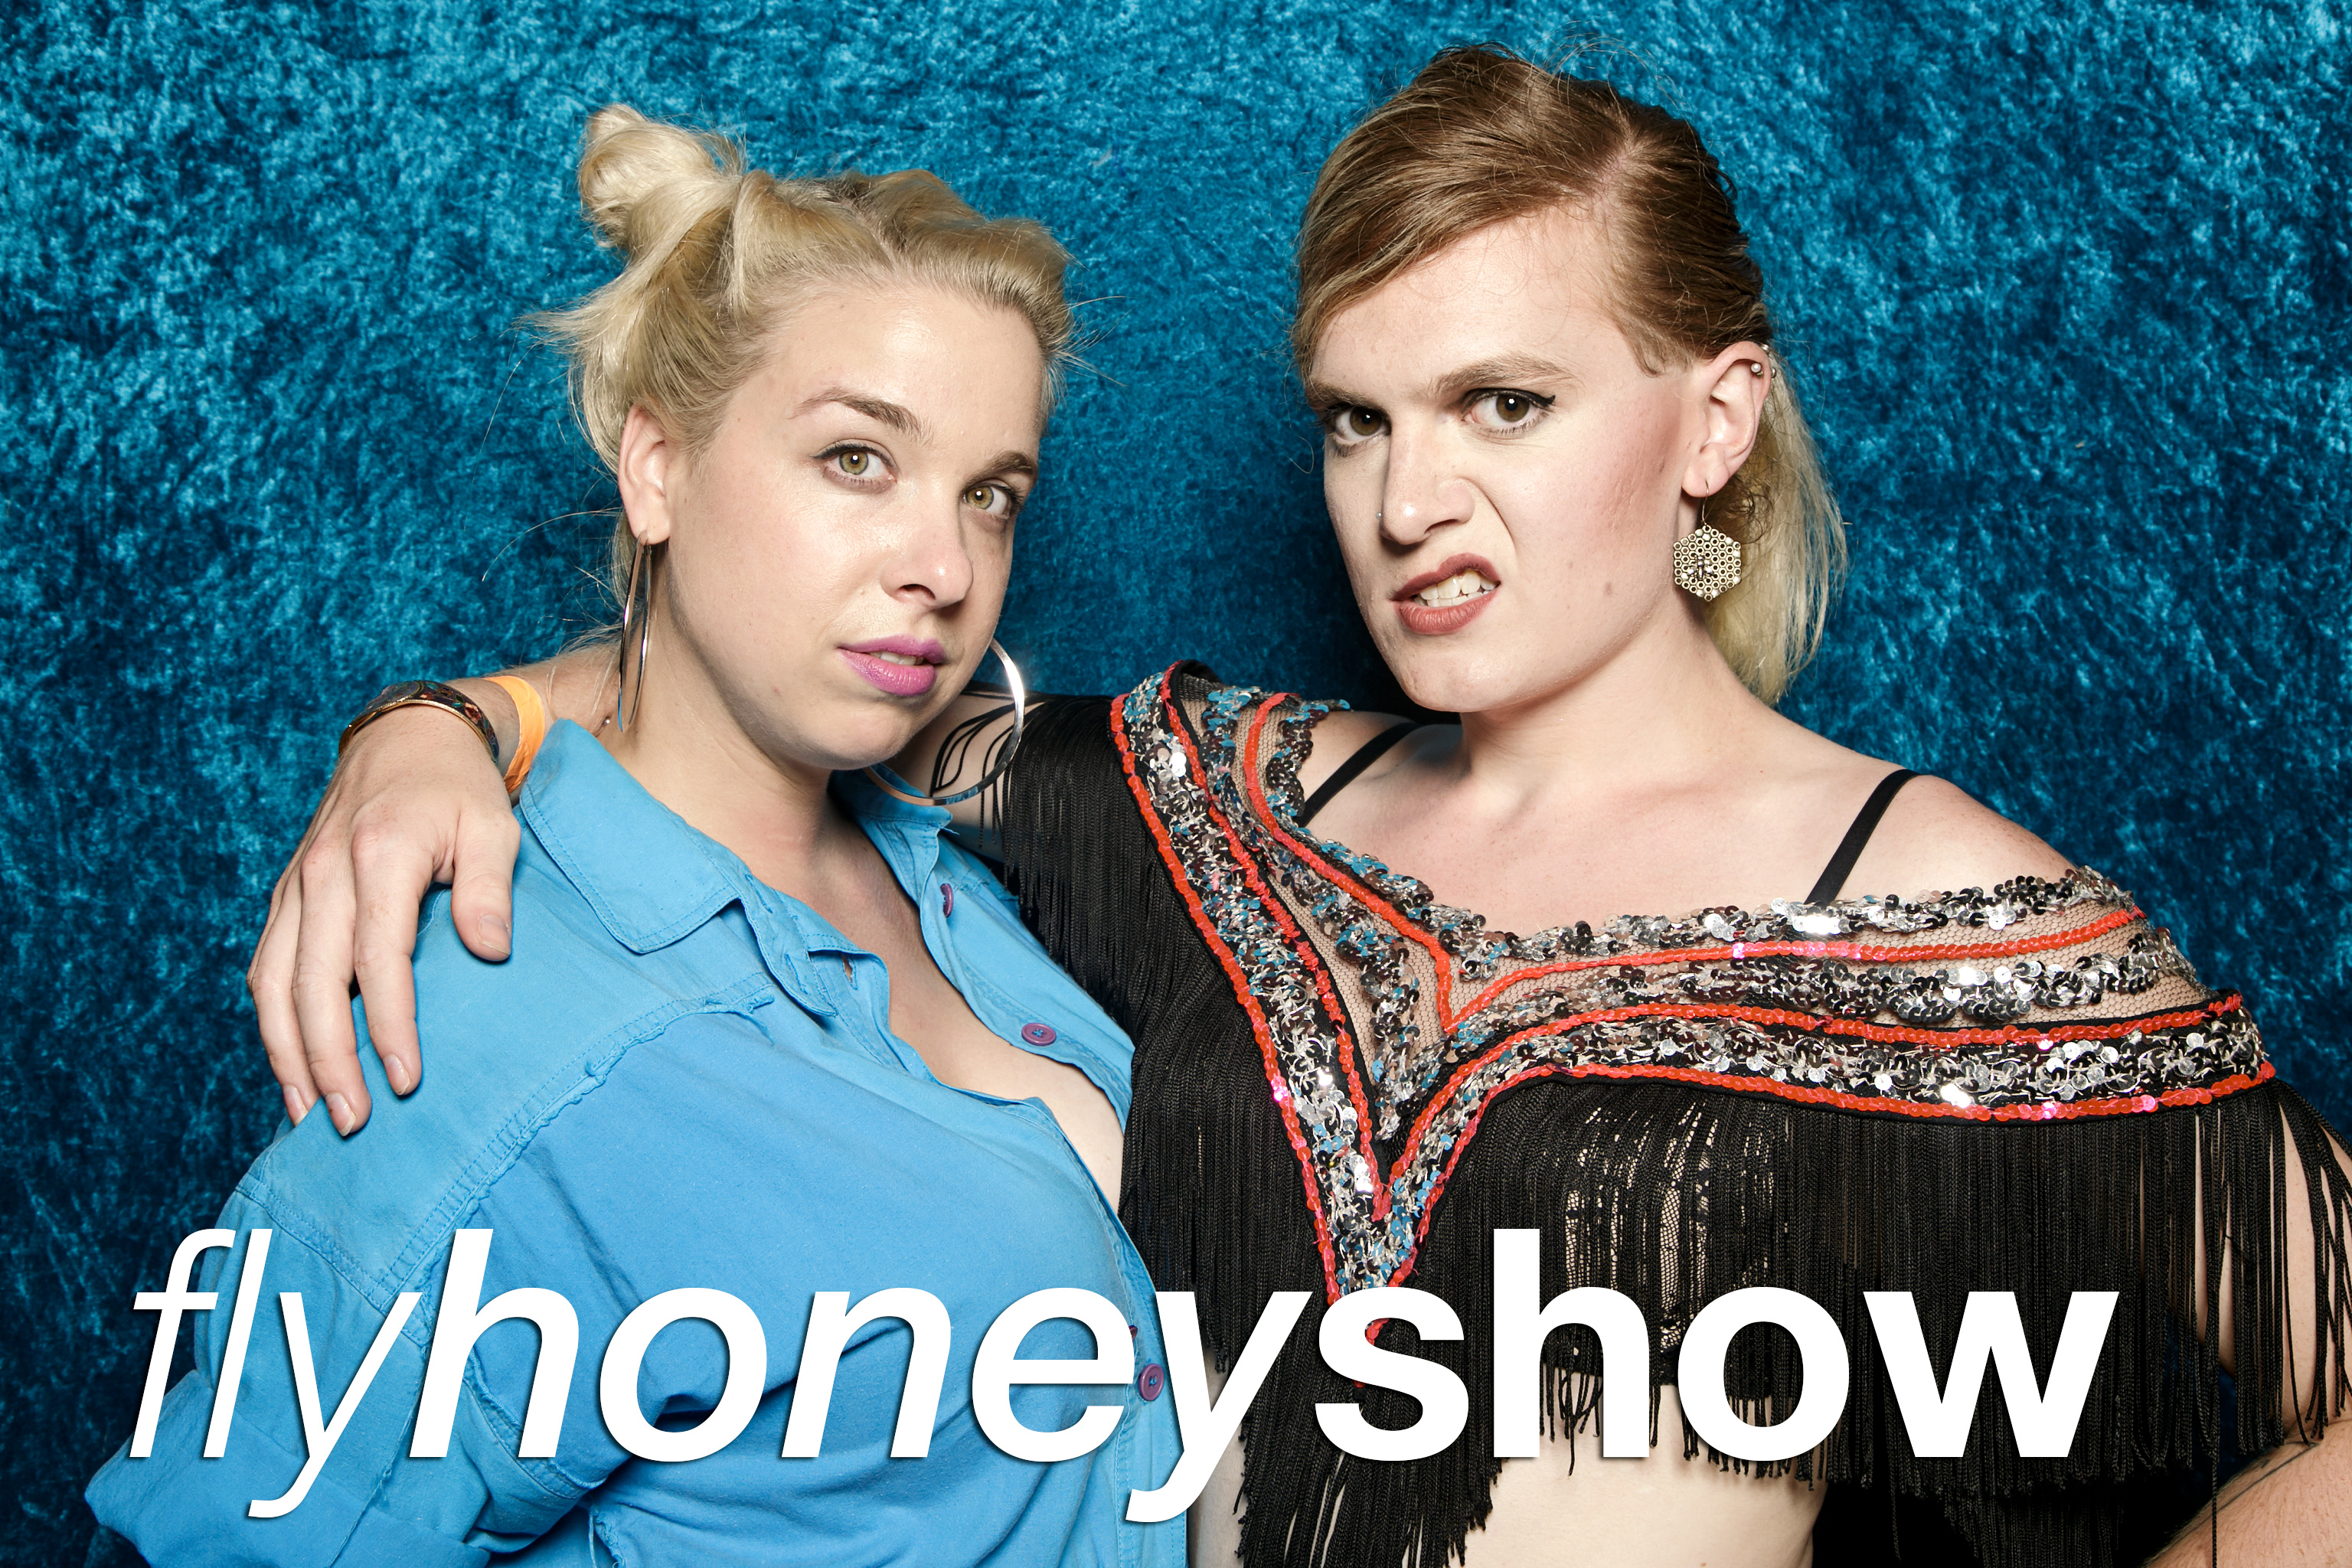 portrait booth photos from the fly honey show, september 3 2016